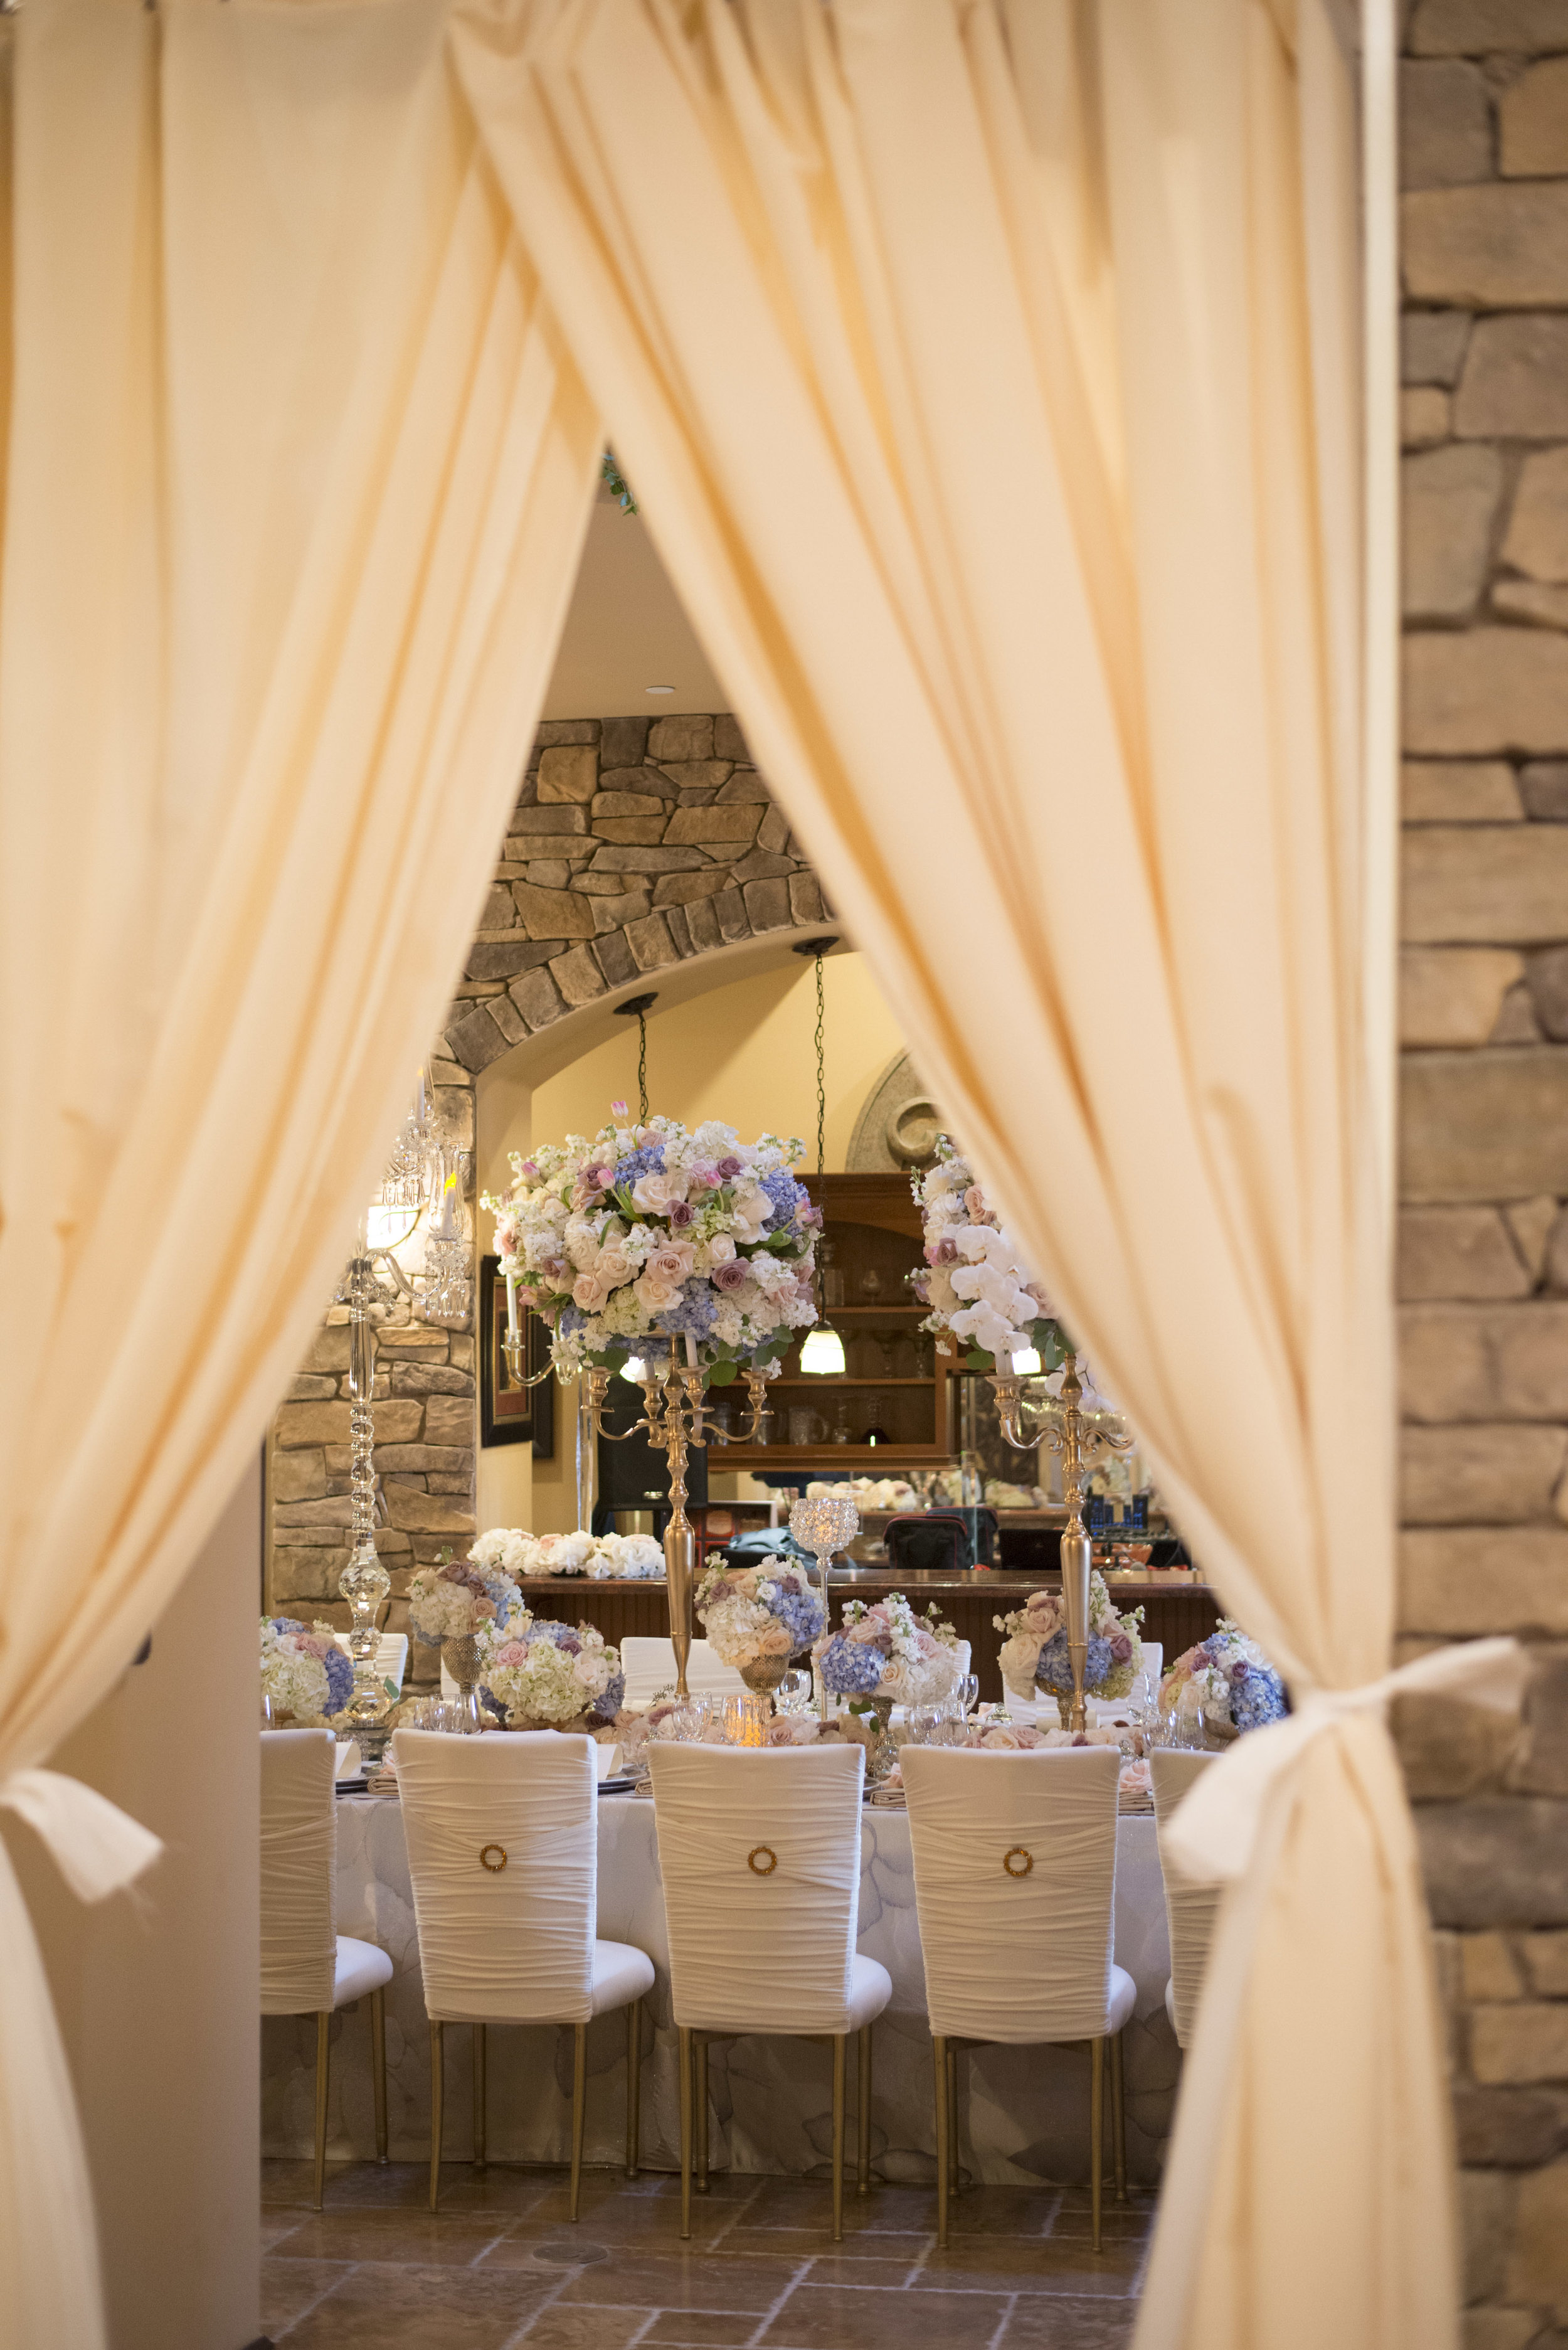 Three rooms were used to seat all of our guests. Guests passed through curtains to get from one space to another. Luxury Las Vegas Wedding Planner Andrea Eppolito. Image by AltF Photography.